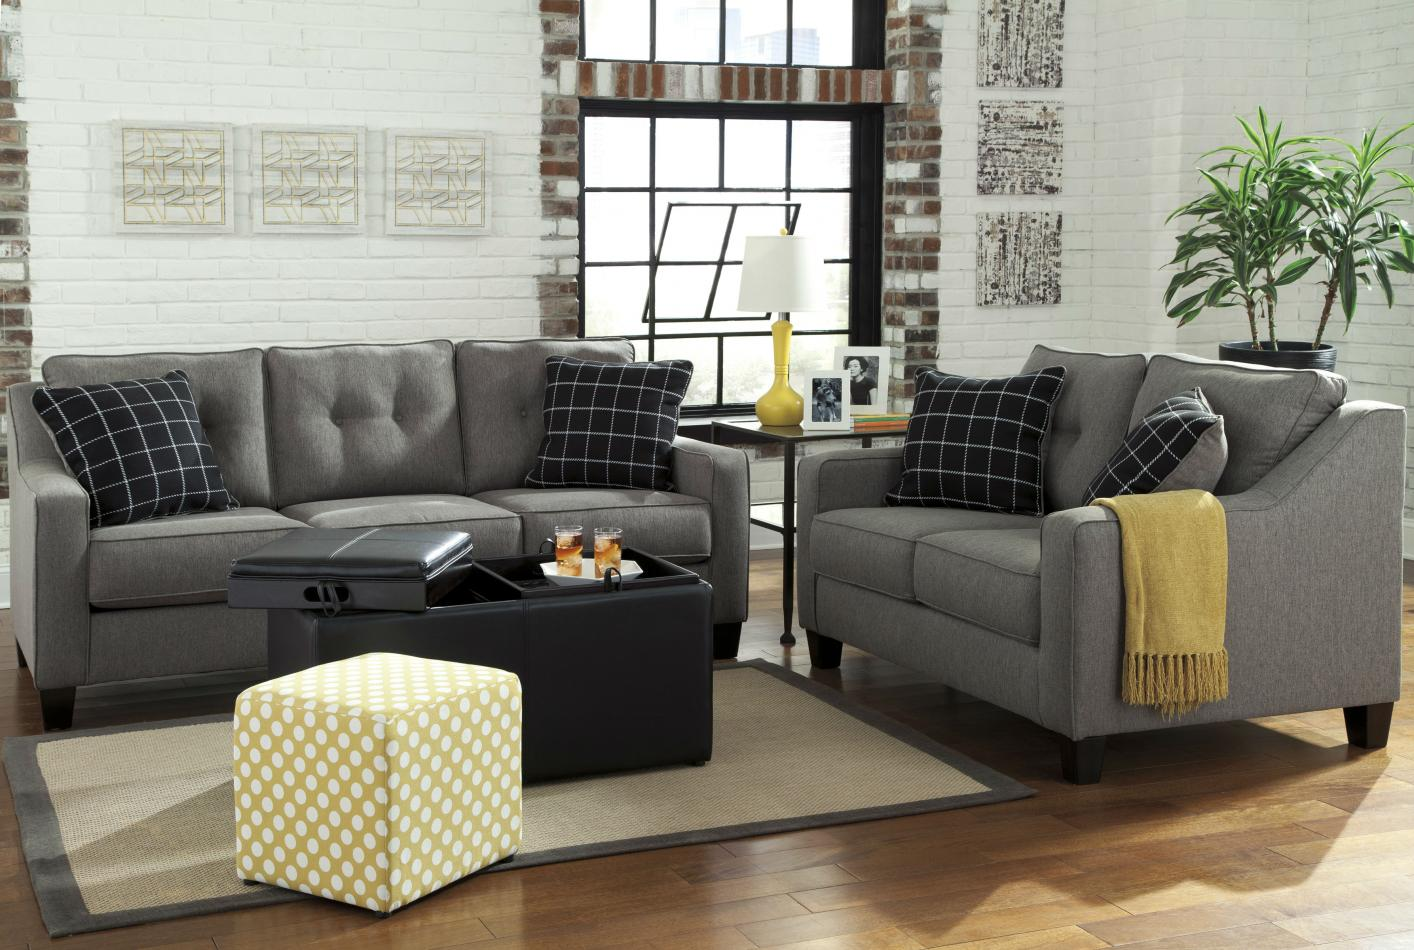 Brindon Grey Fabric Sofa Bed